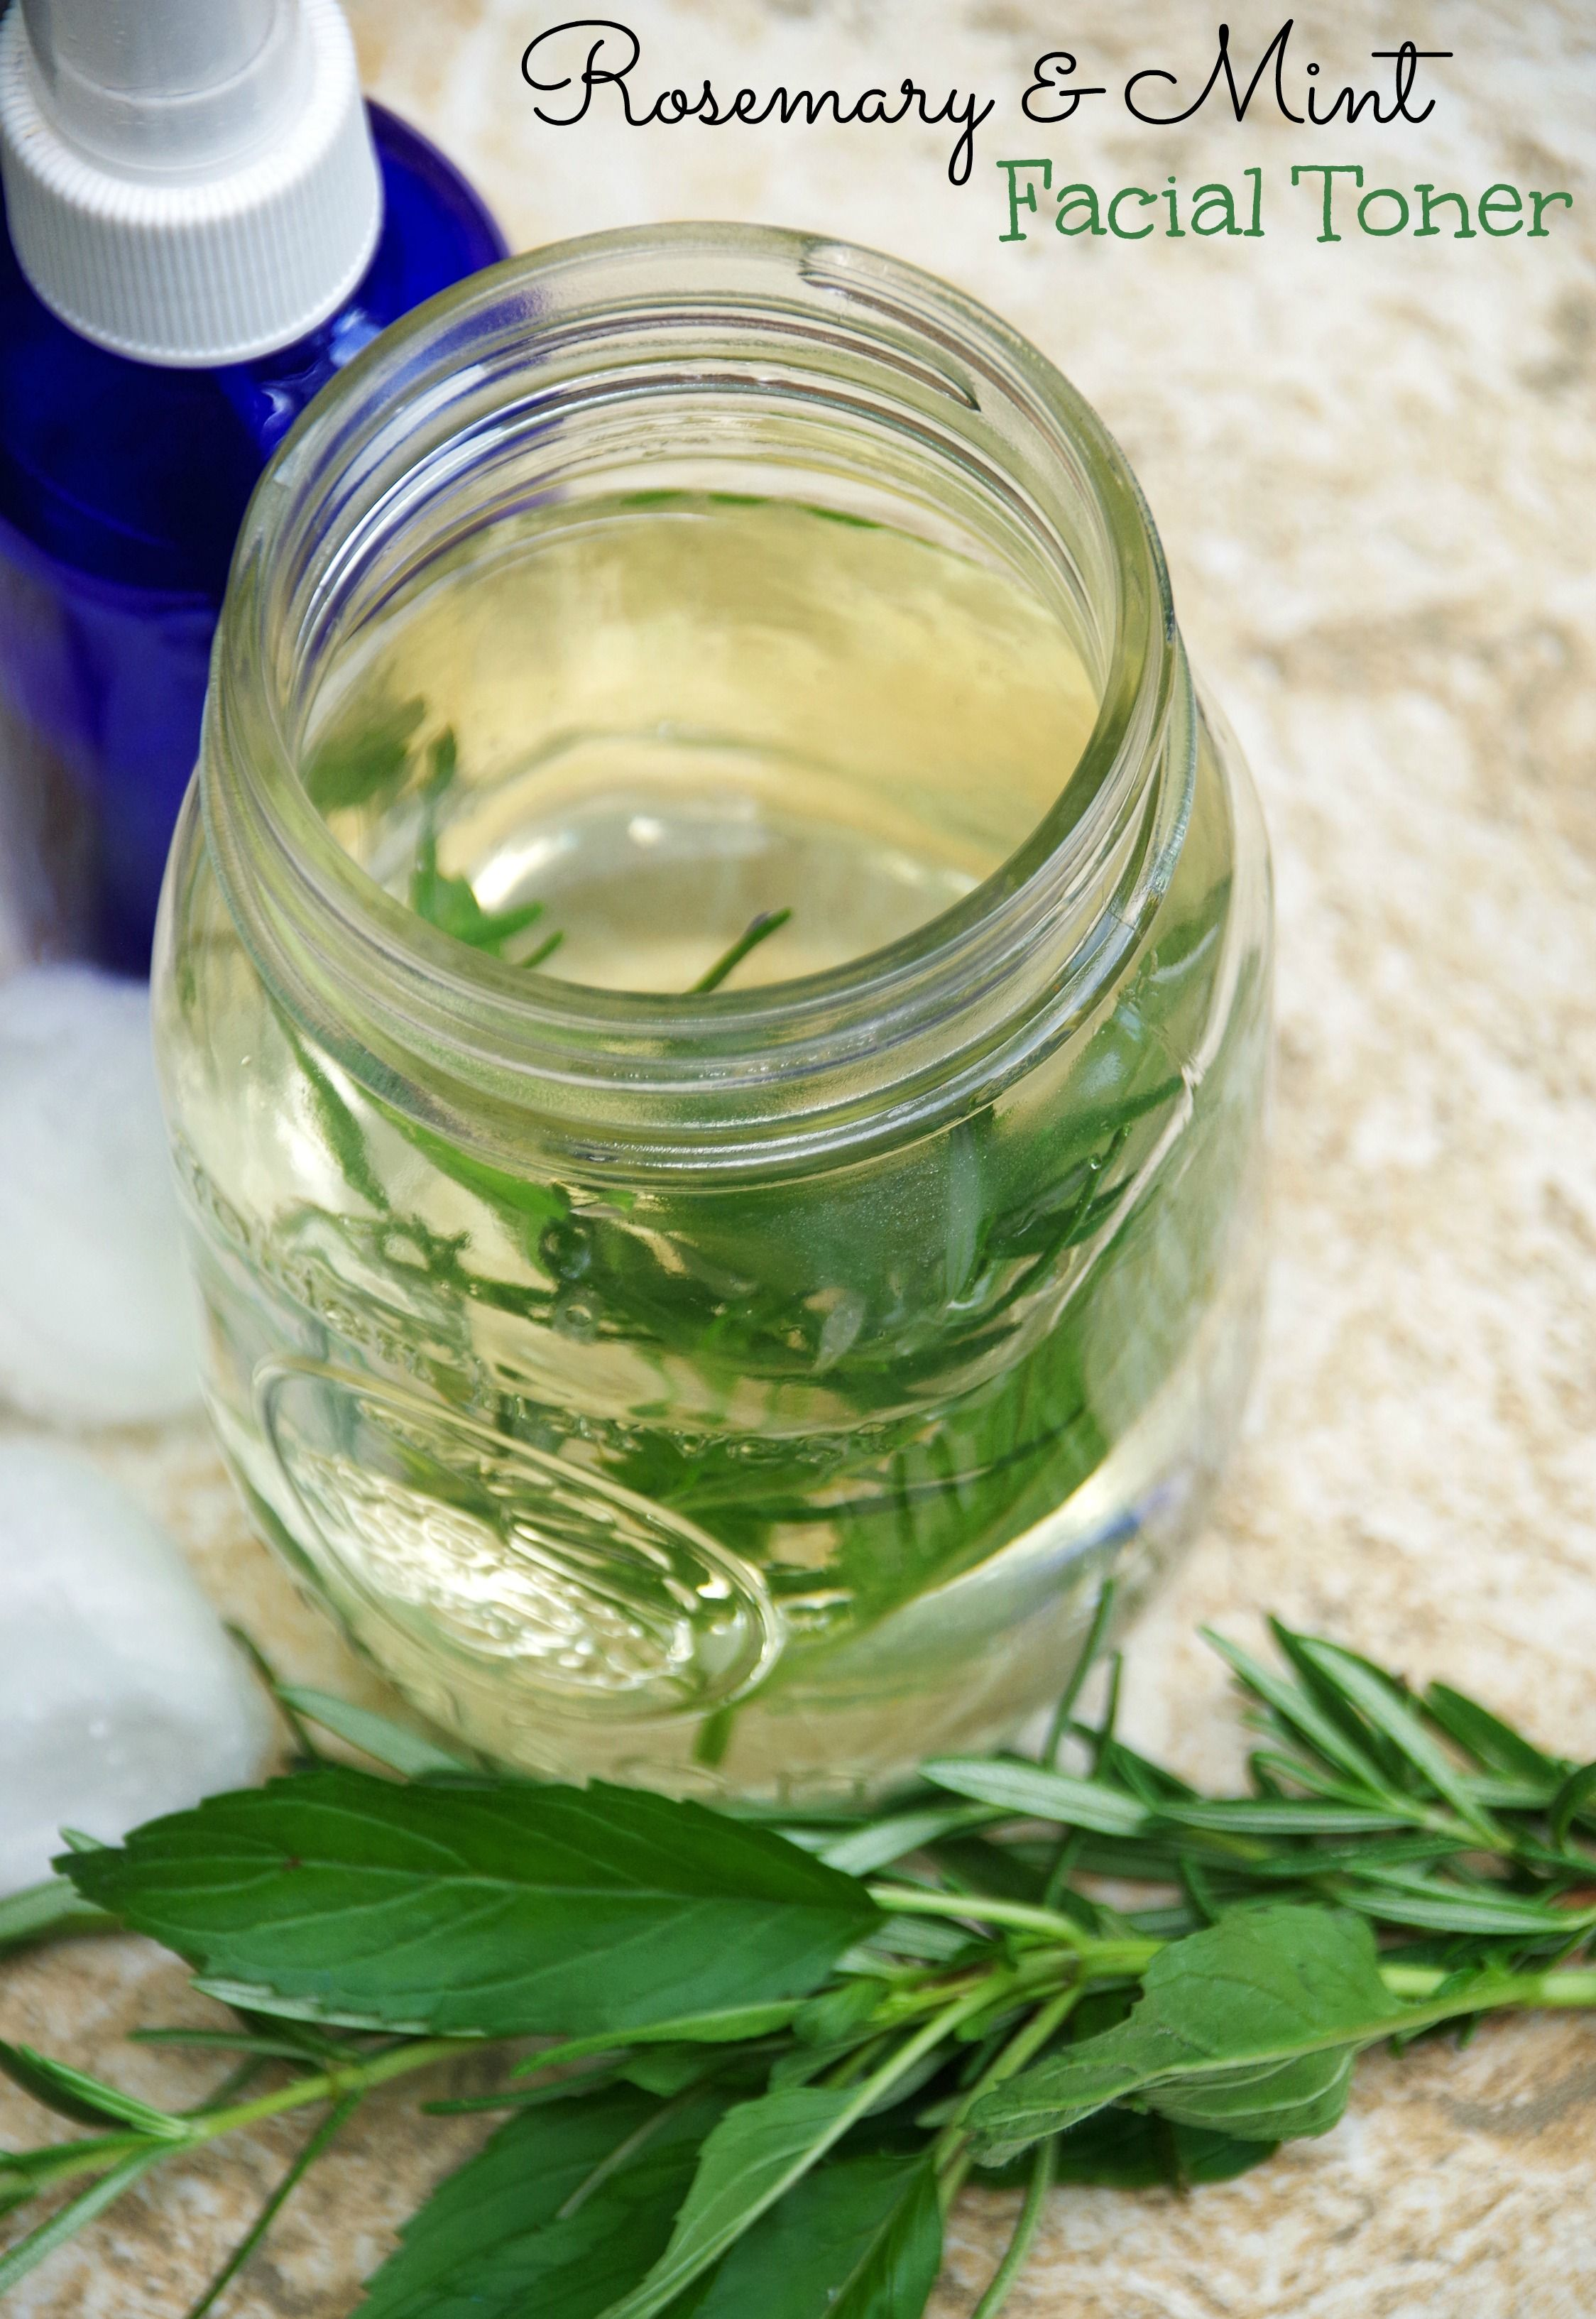 Opinion homemade facial toner fresh rosemary something